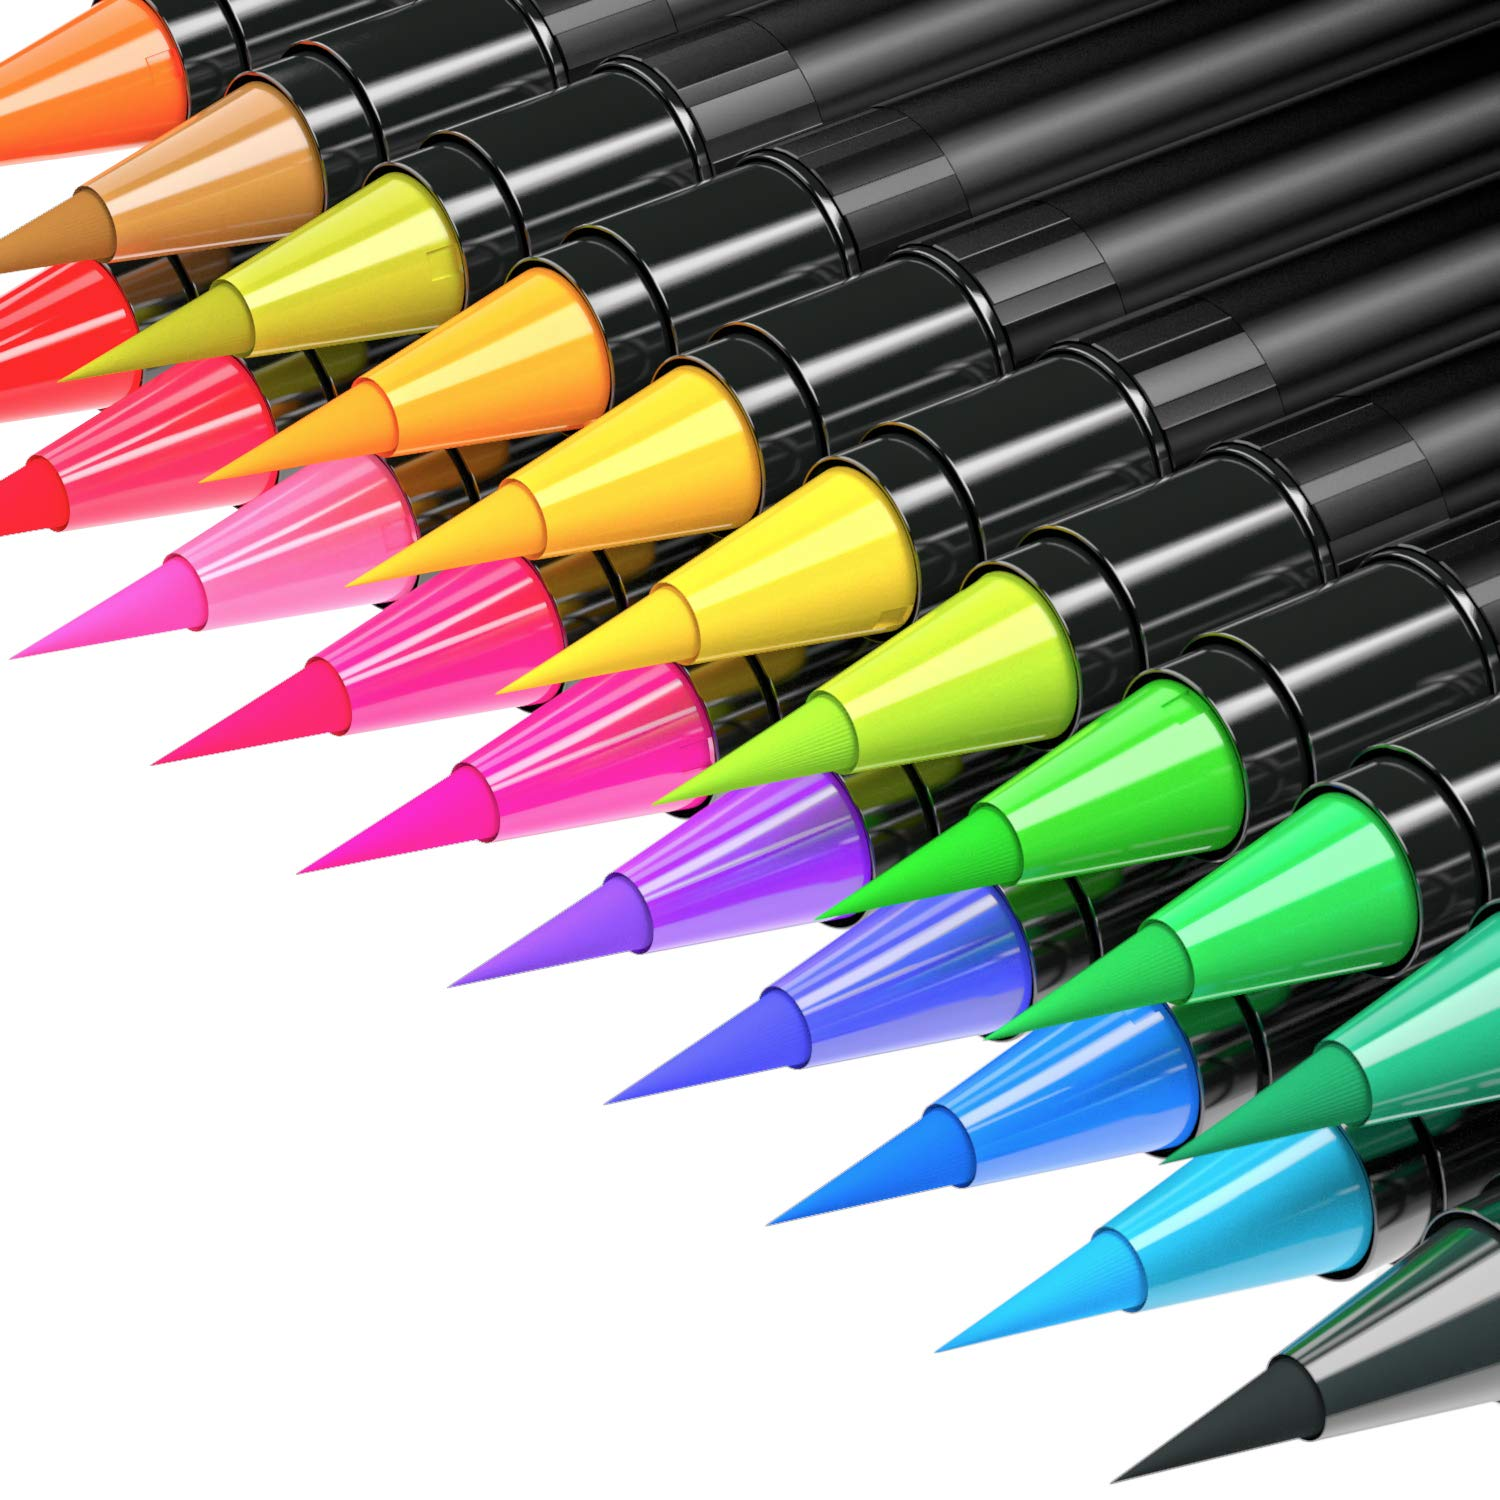 Watercolor Brush Pens 20 Colors Water Based - Soft Brush Markers for Coloring Books, Drawing, Calligraphy, Writing - Set of 20 Colors KronStar